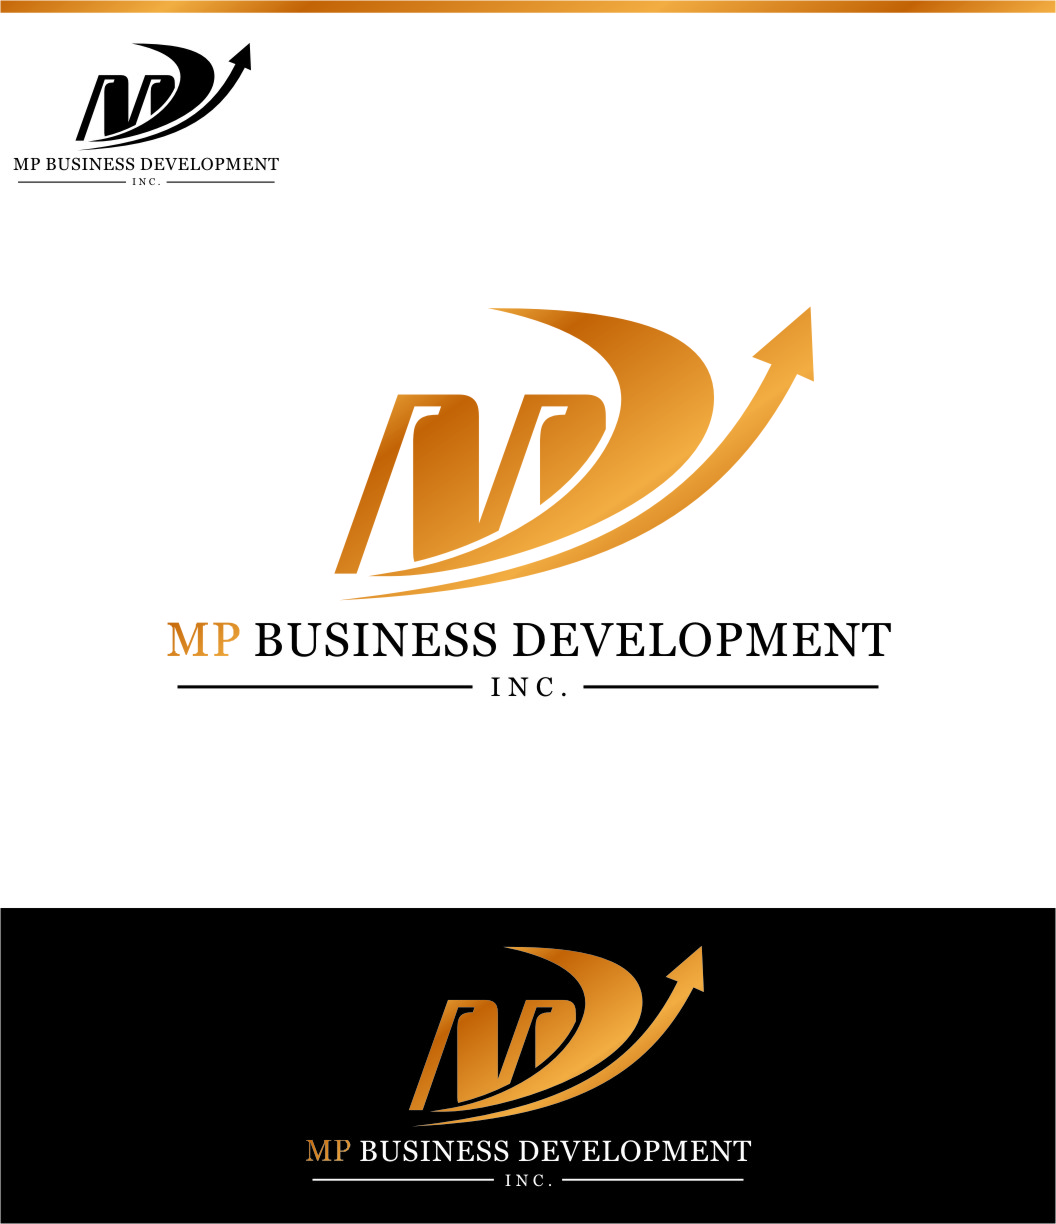 Logo Design by Ngepet_art - Entry No. 151 in the Logo Design Contest MP Business Development Inc. Logo Design.